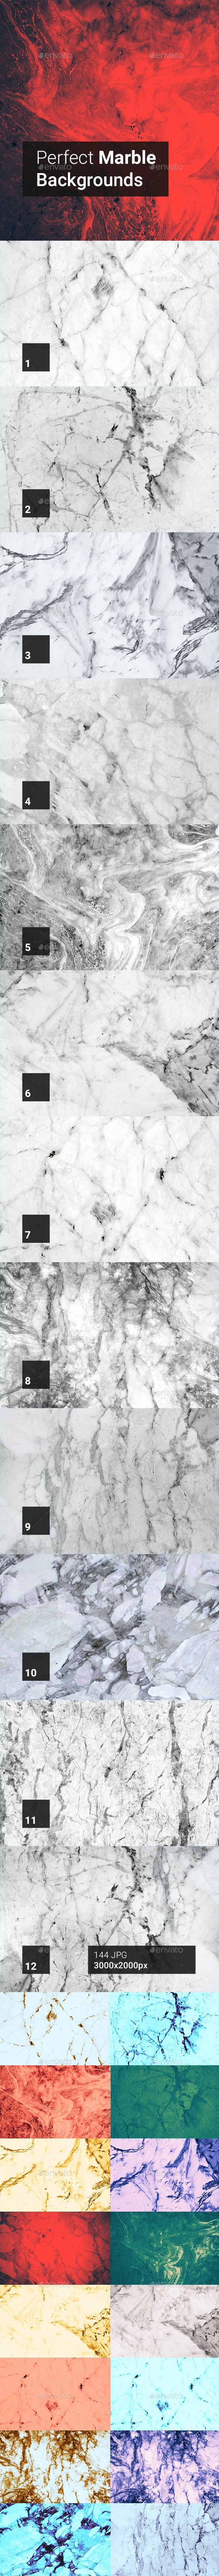 144 Perfect Marble Backgrounds - Abstract Backgrounds